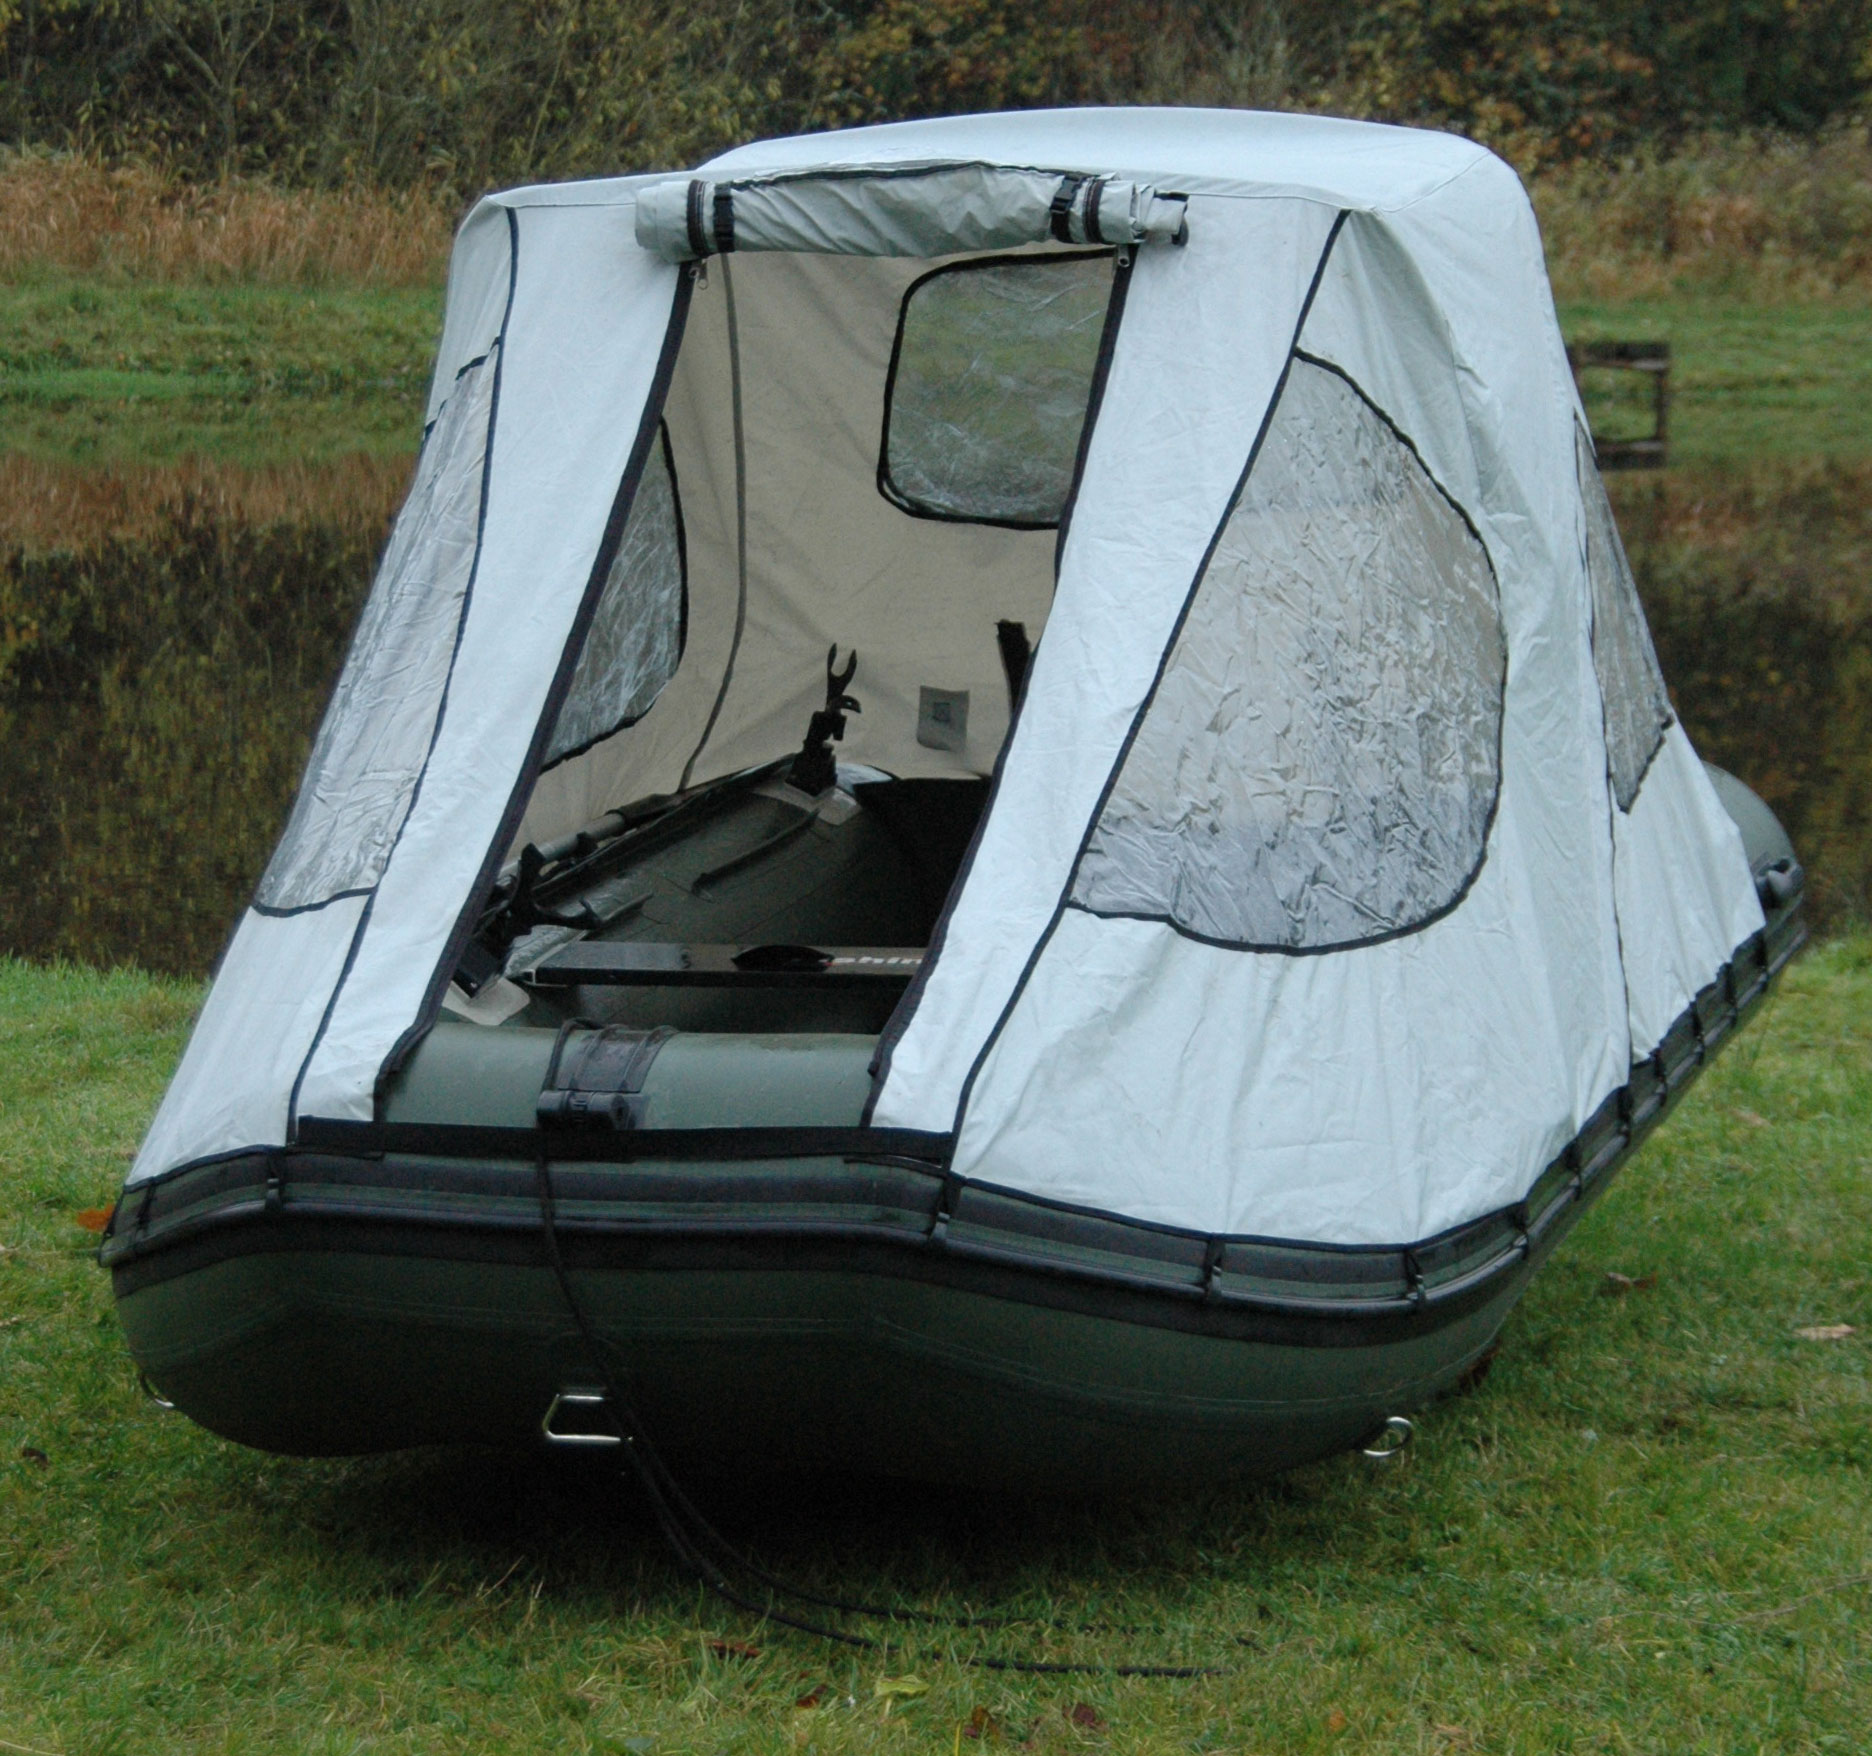 Inflatable Tent Furniture: BISON MARINE BIMINI COCKPIT TENT CANOPY FOR INFLATABLE